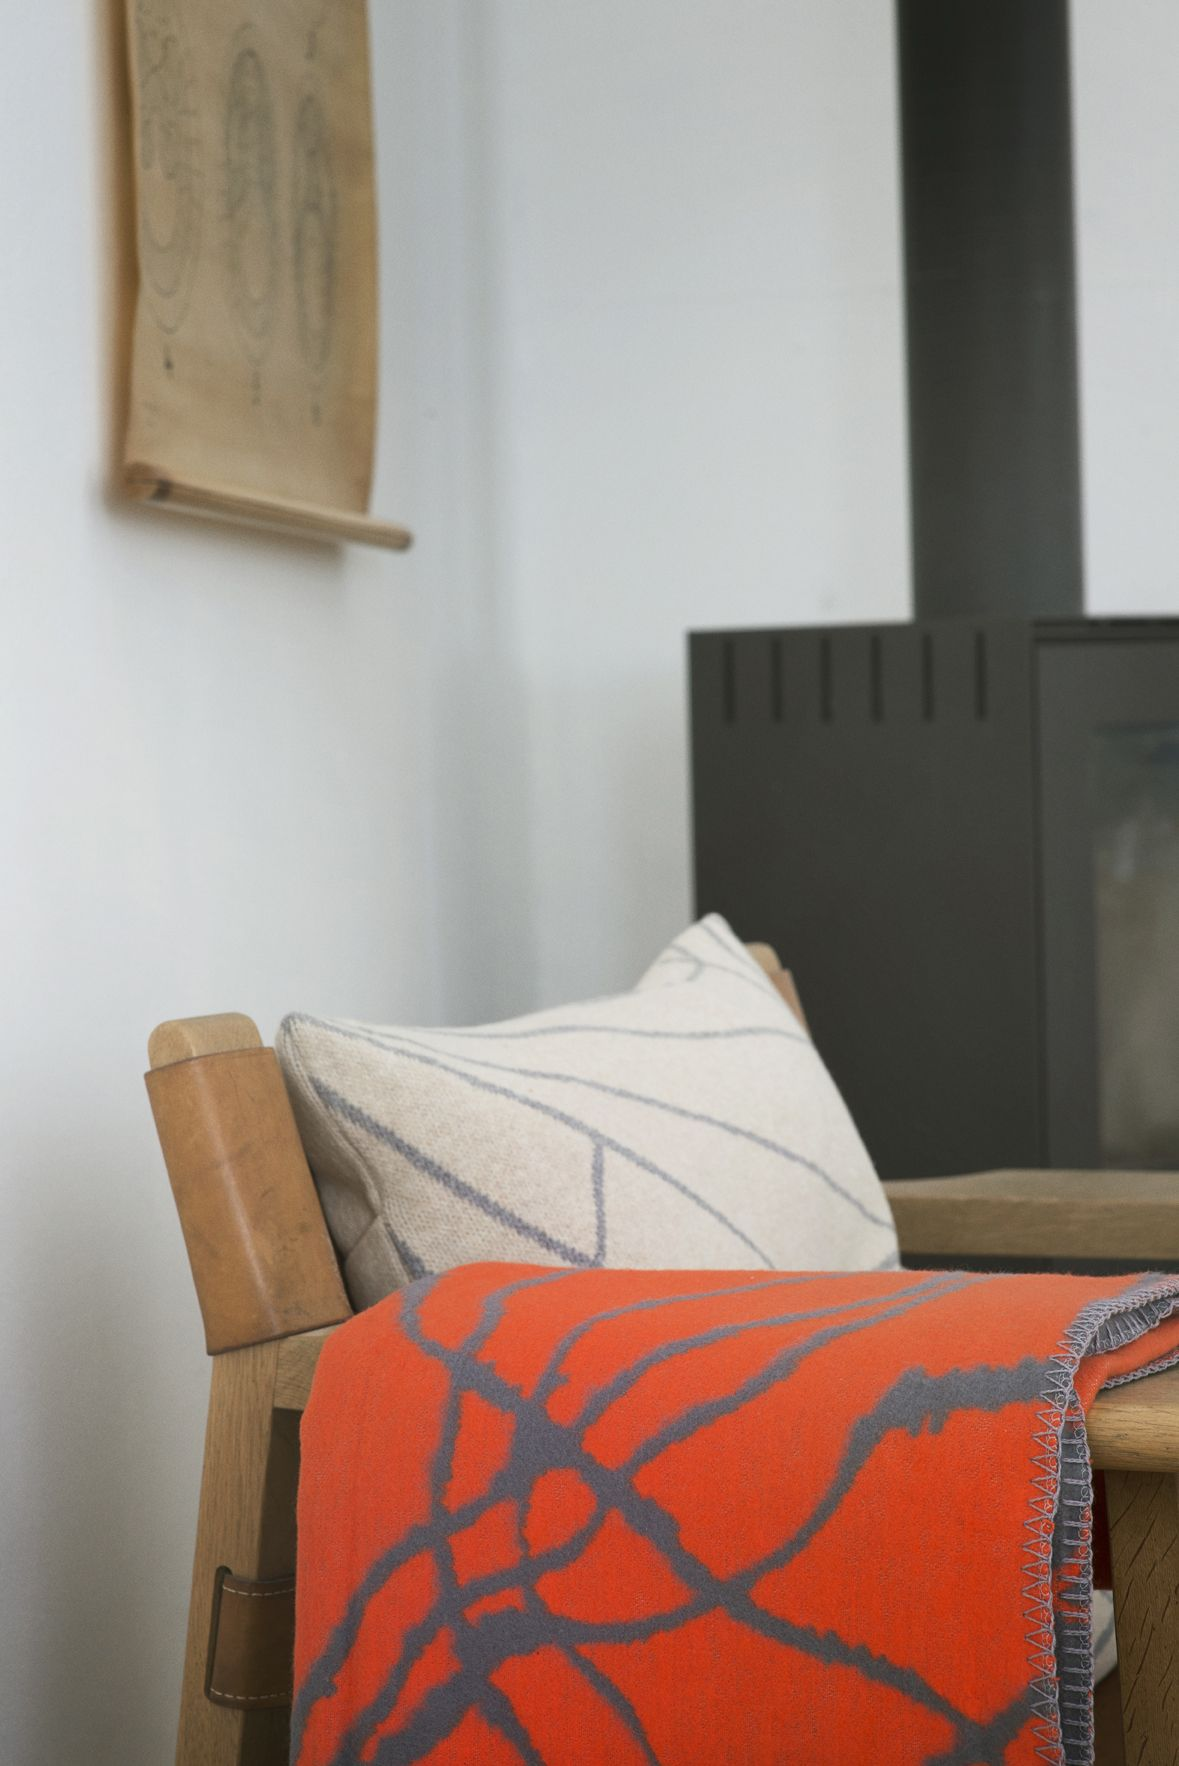 Throw / Blanket Mist Grey / Orange   Organic Cotton   Fabulous Goose  Scandinavian Interior Design Products To A Discerning Client